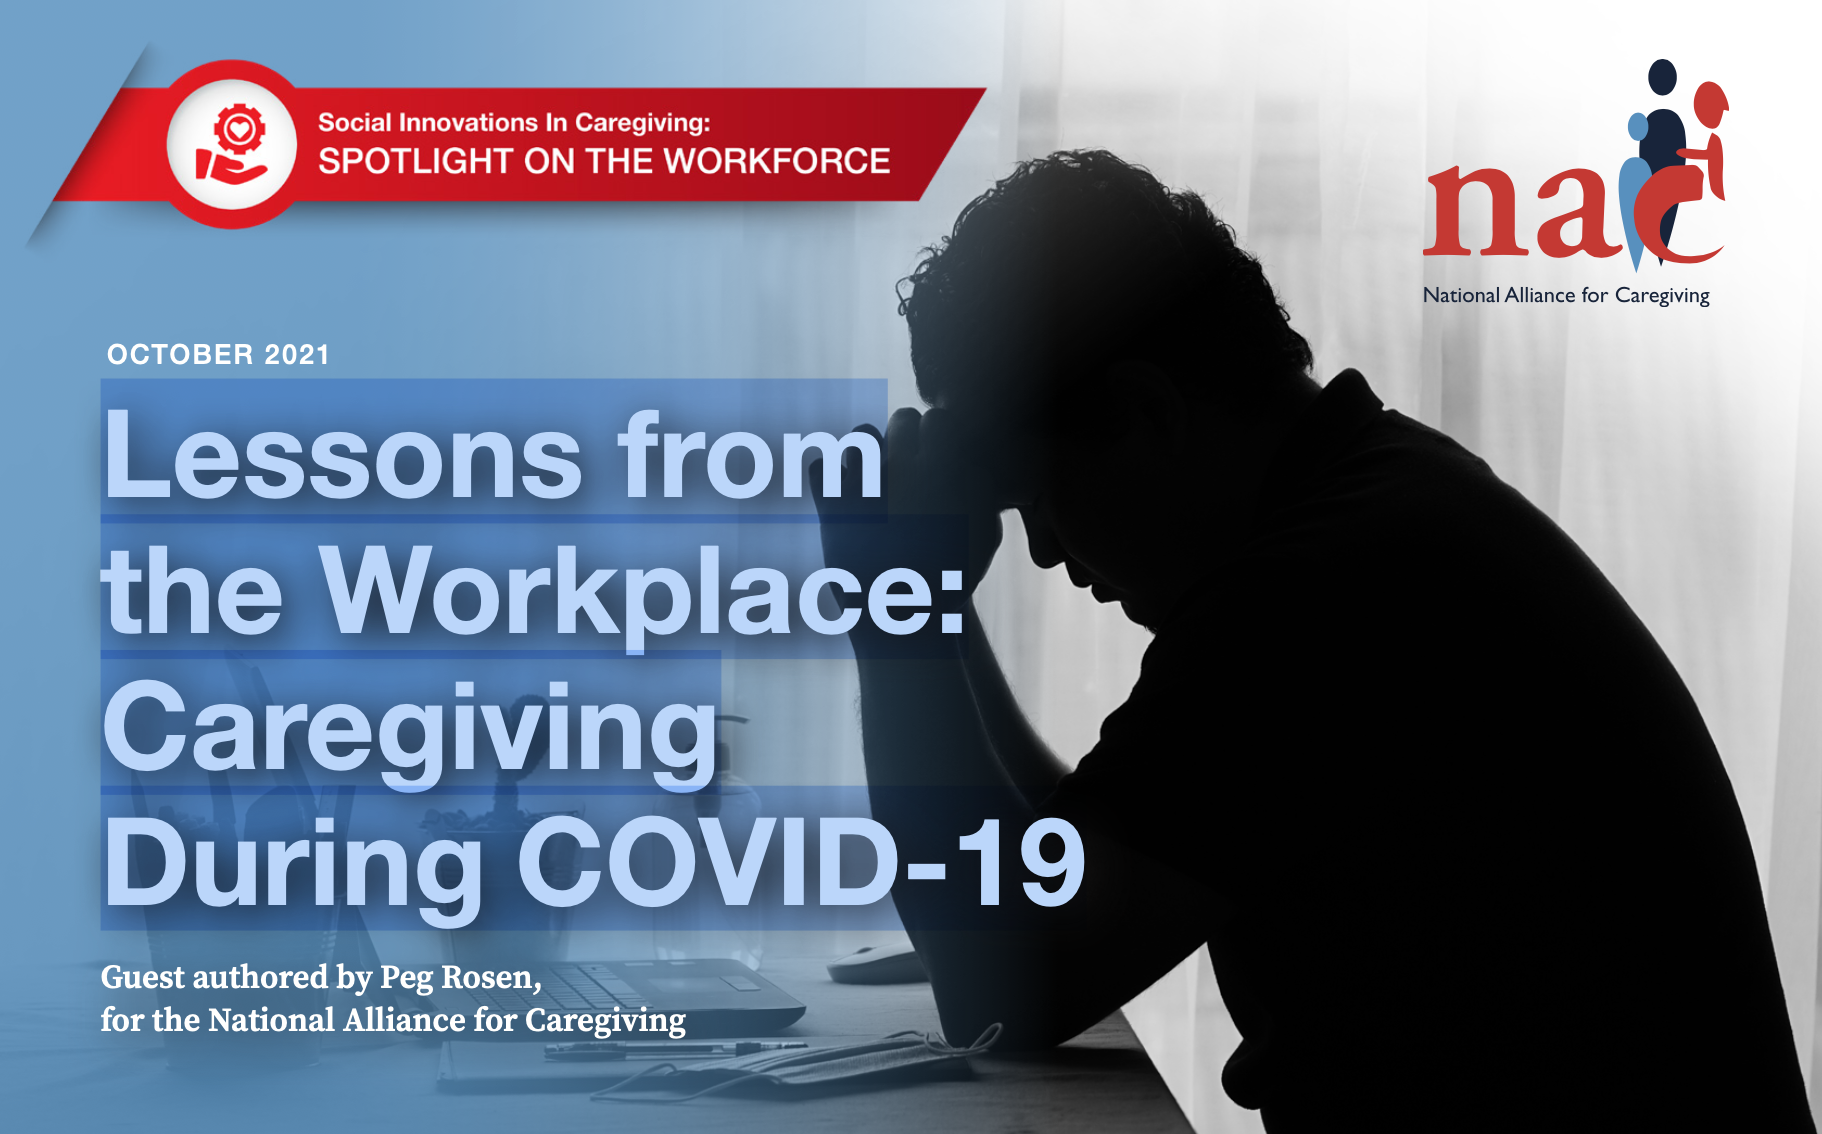 Lessons from the Workplace: Caregiving During COVID-19